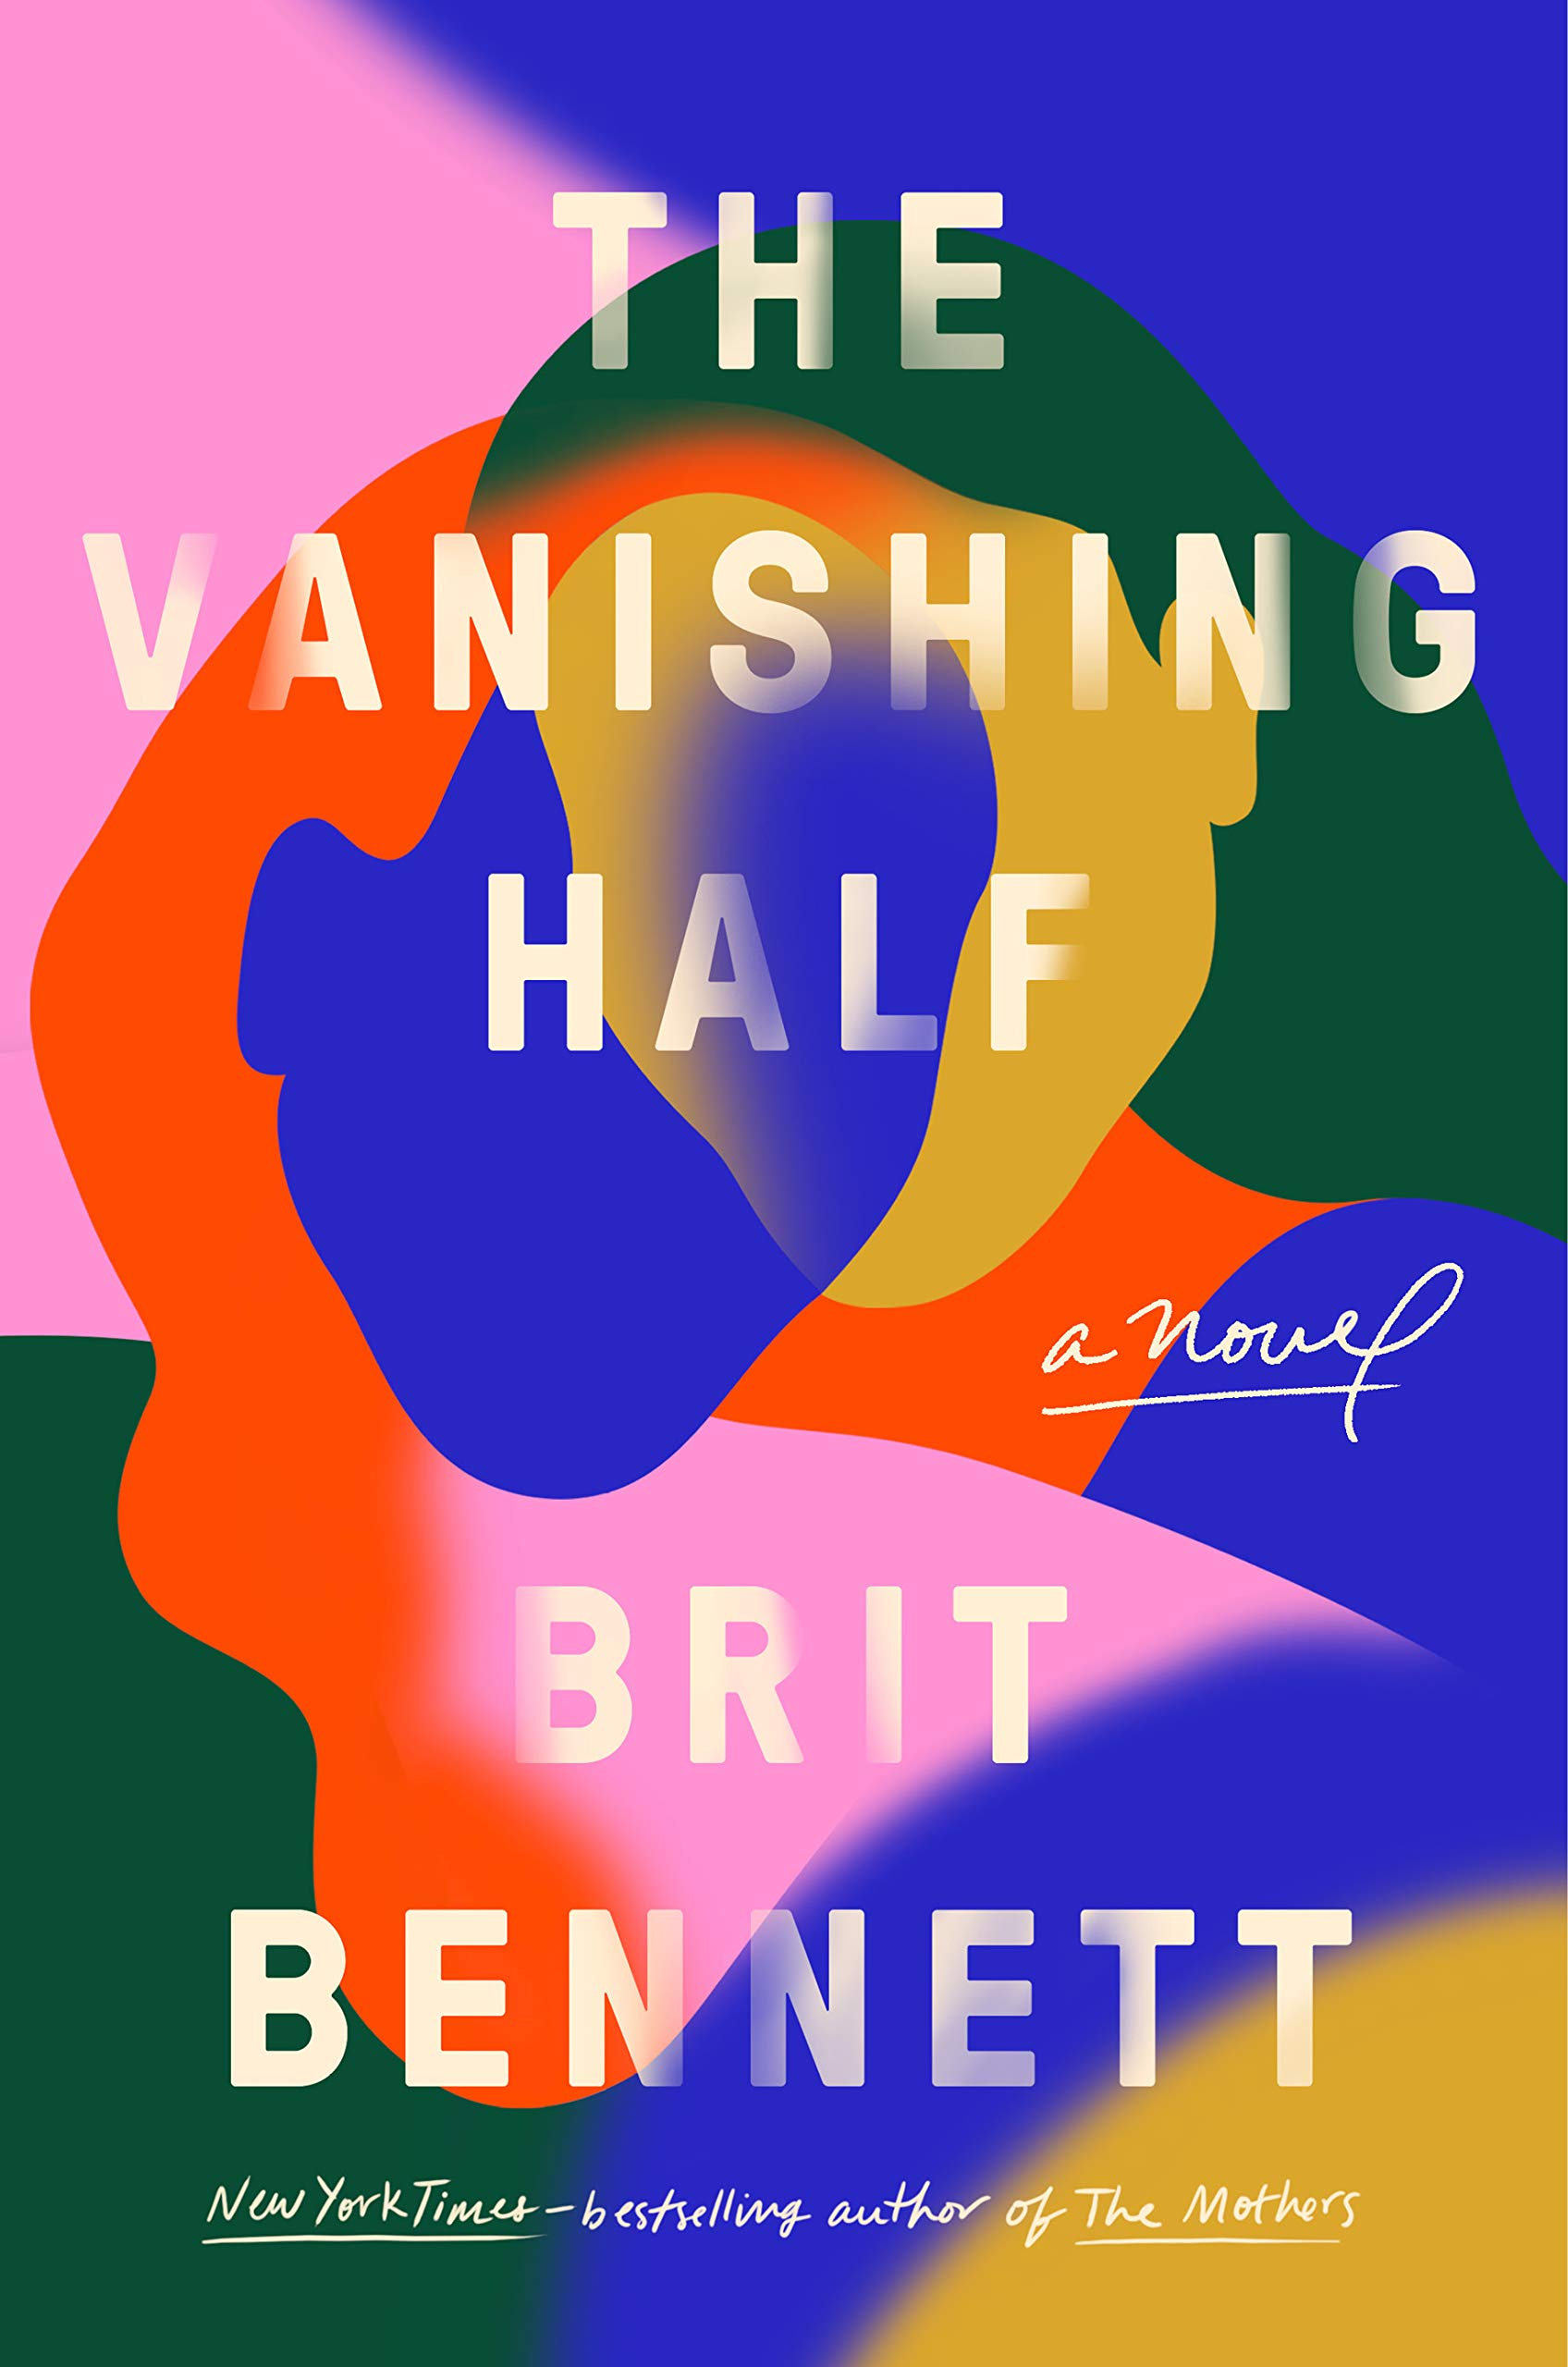 Ellen's Pick of the Week: The Vanishing Half by Brit Bennett